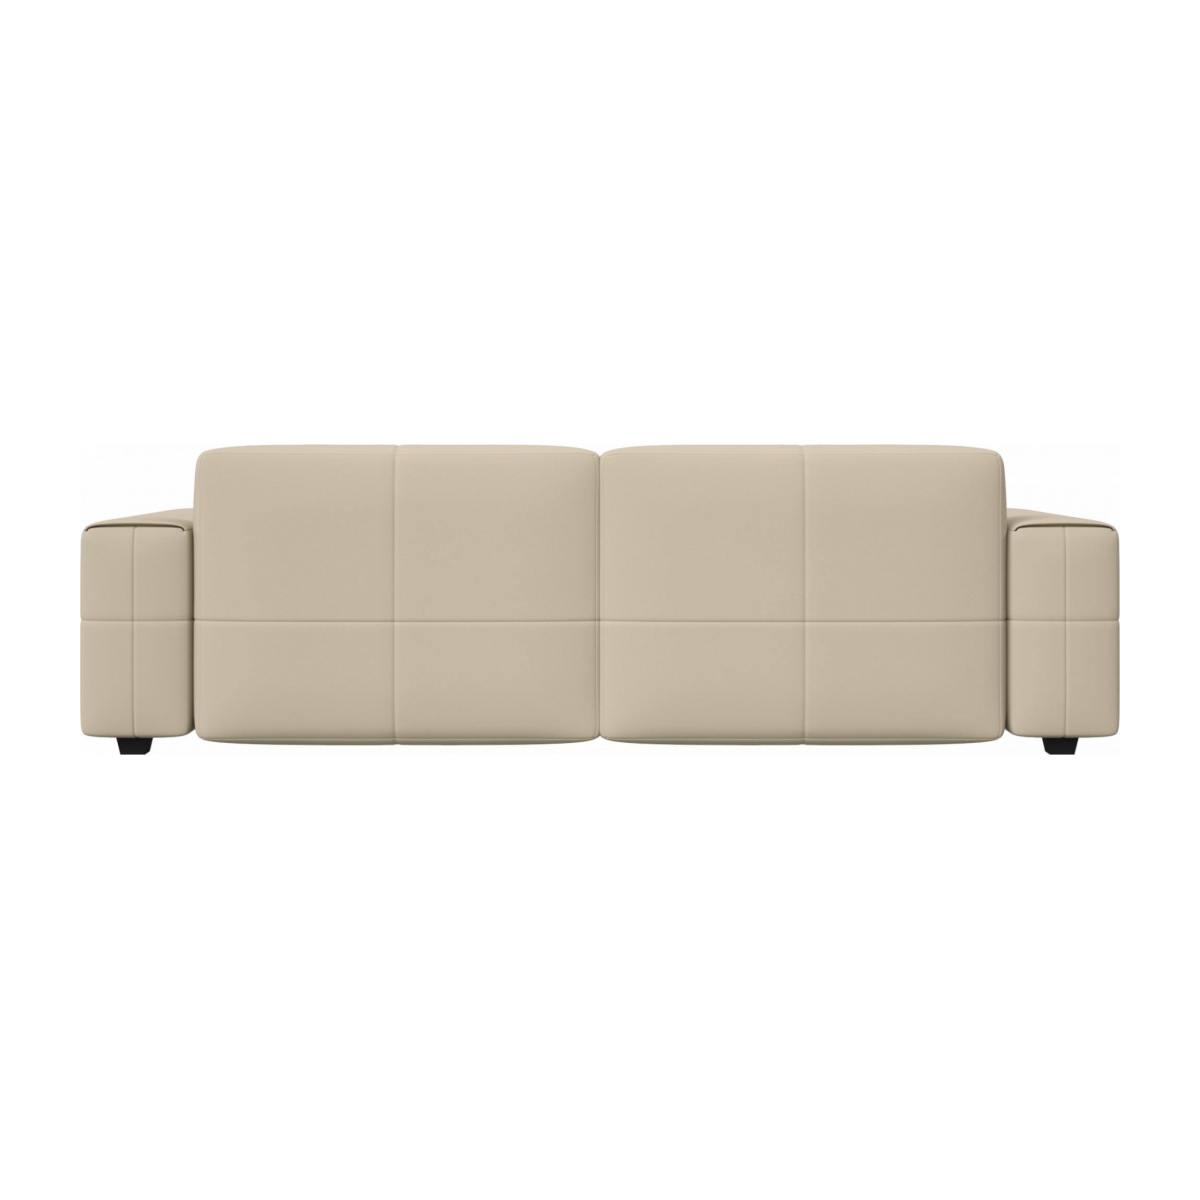 4 seater sofa in Savoy semi-aniline leather, off white n°4